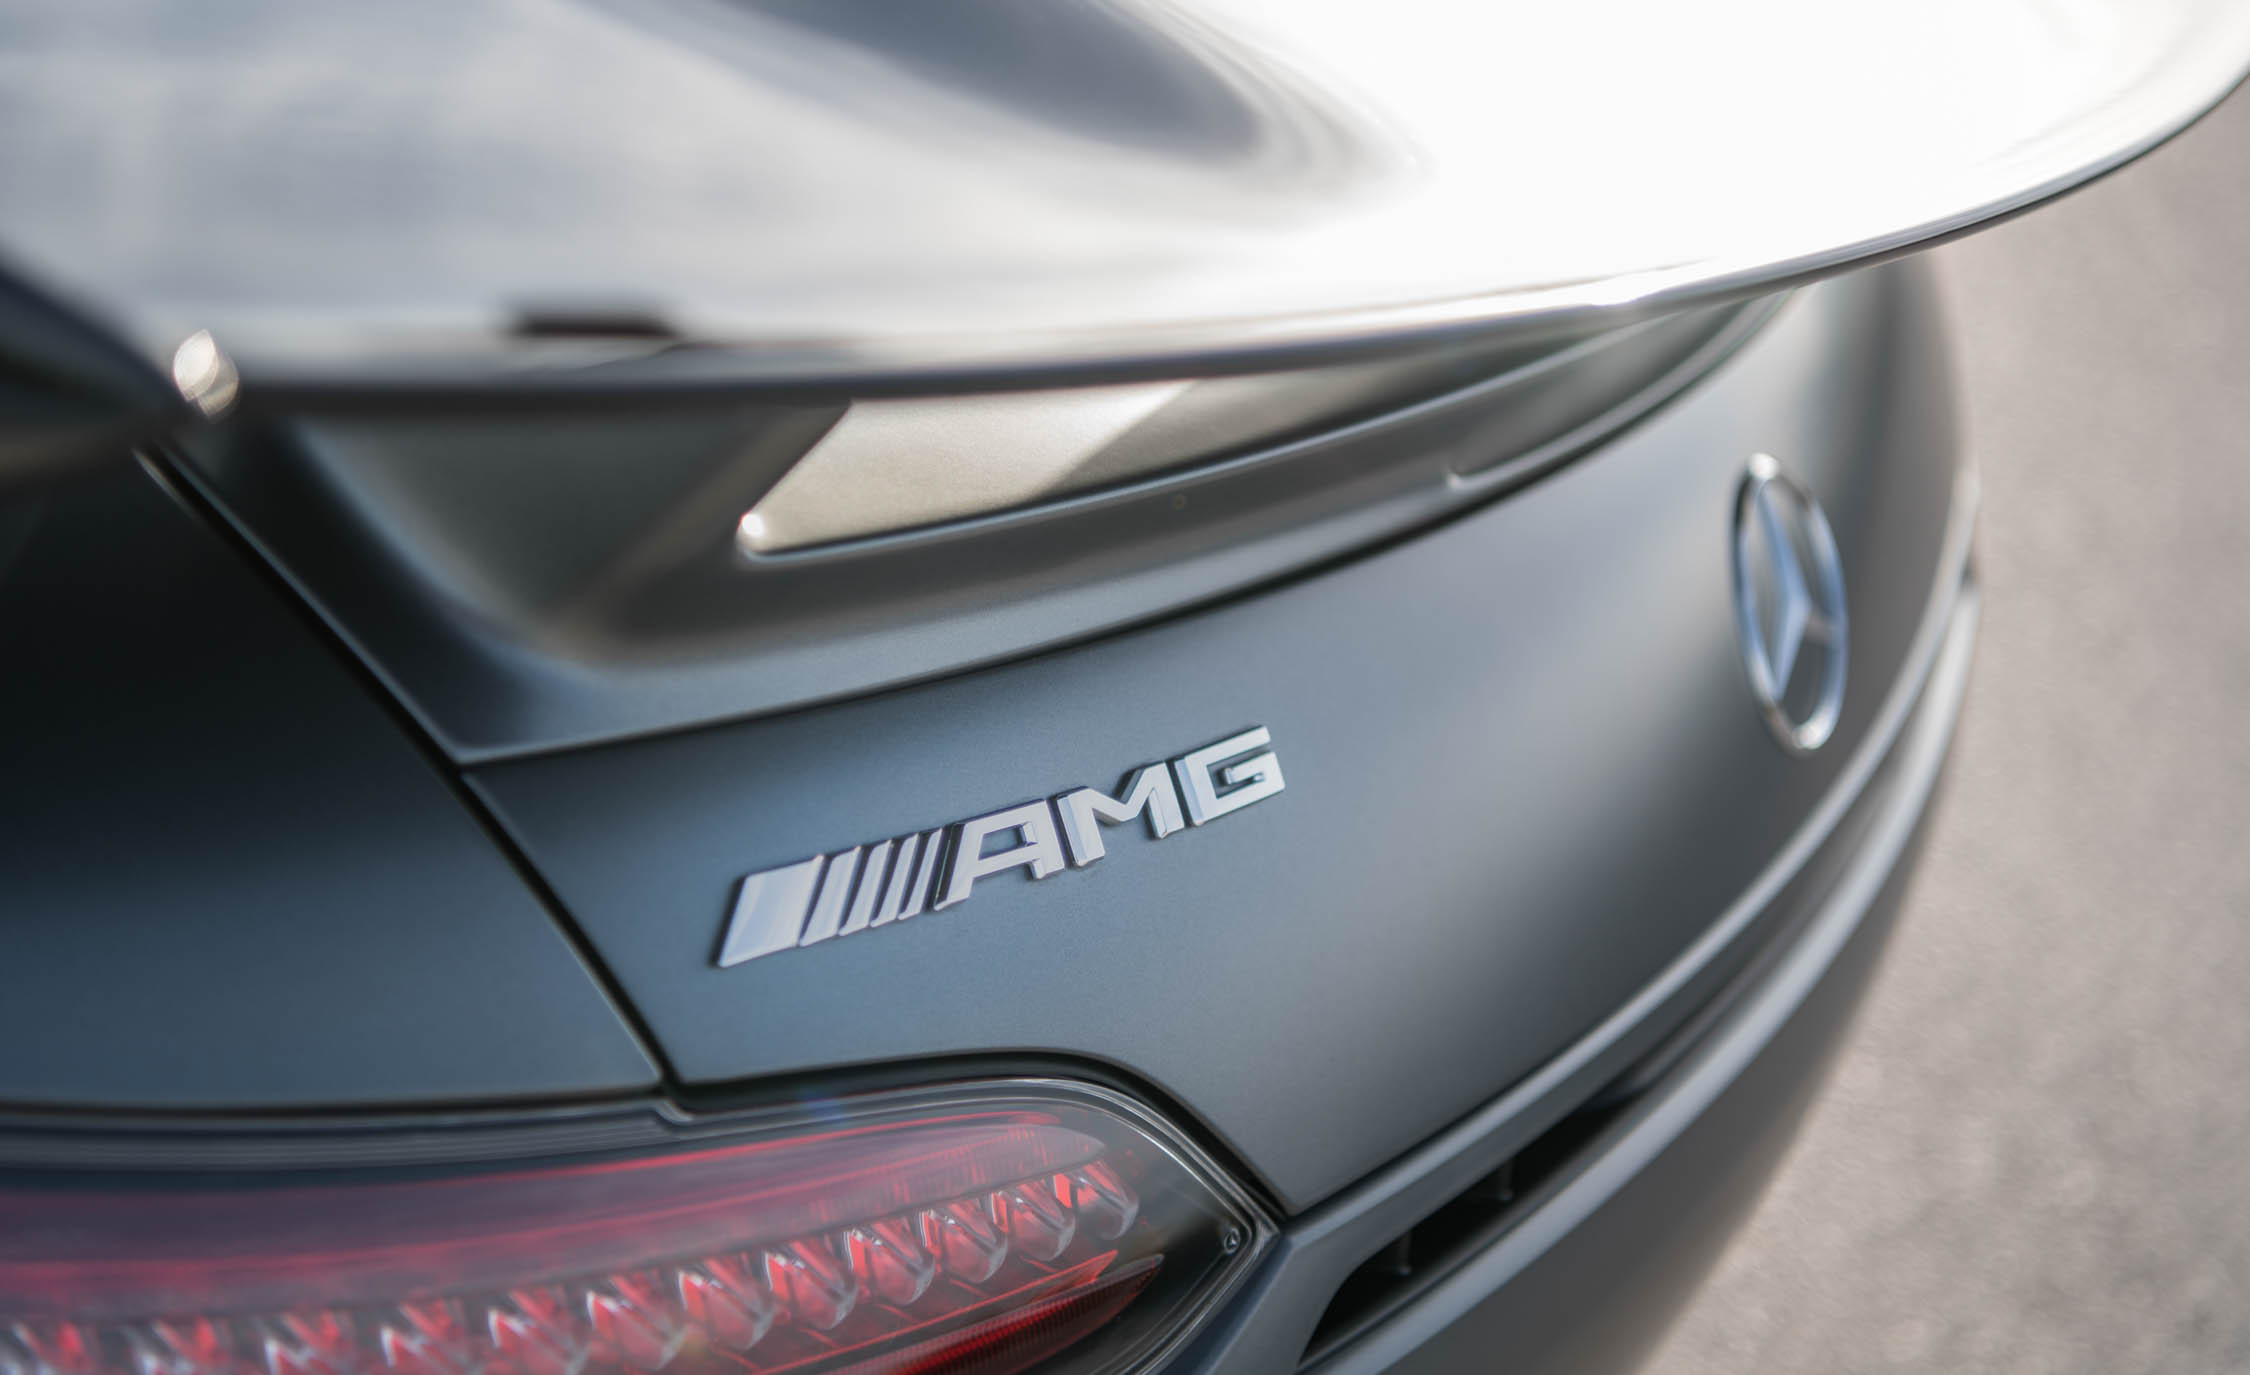 2018 Mercedes AMG GT R Exterior View Rear Badge (Photo 17 of 36)